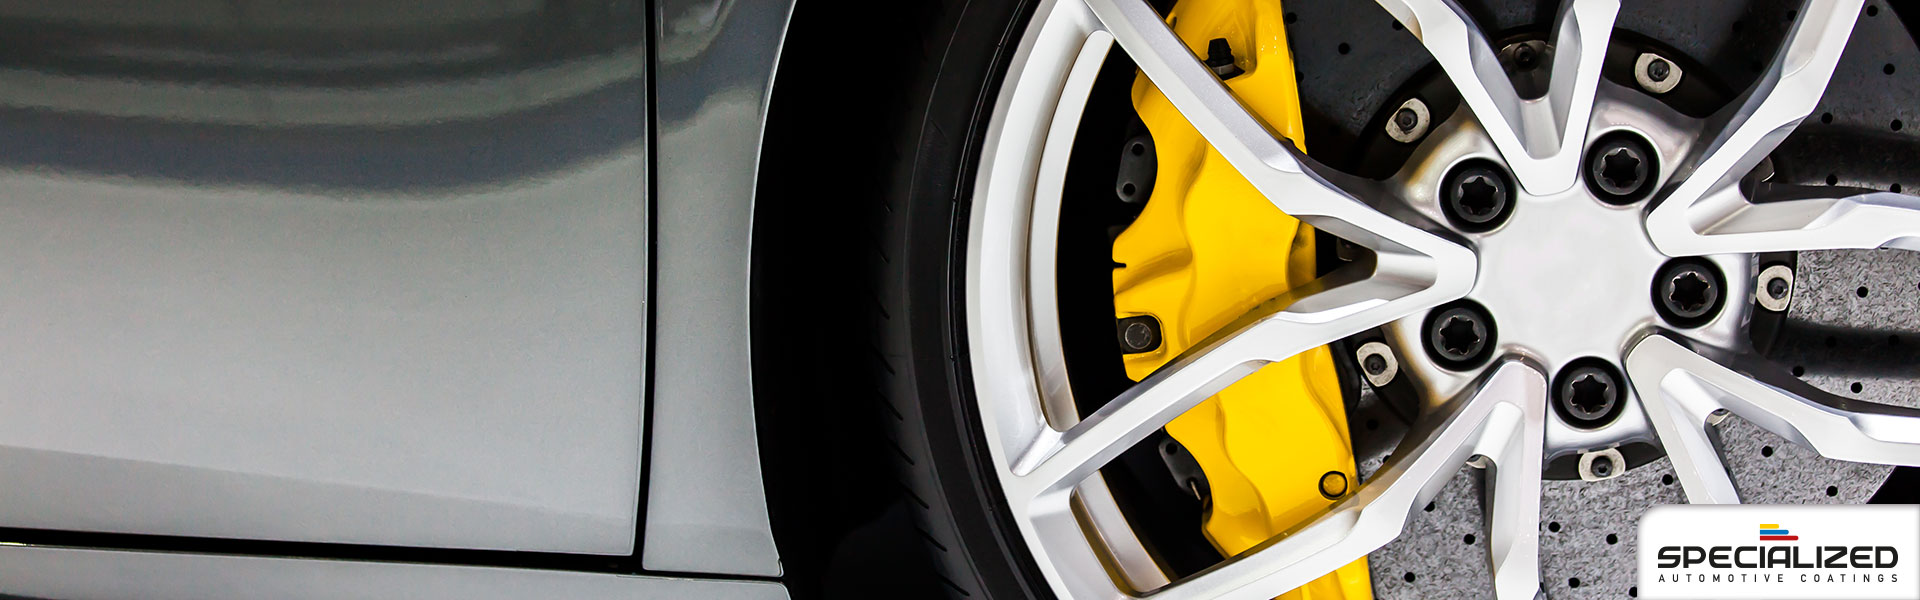 Automotive Coatings image